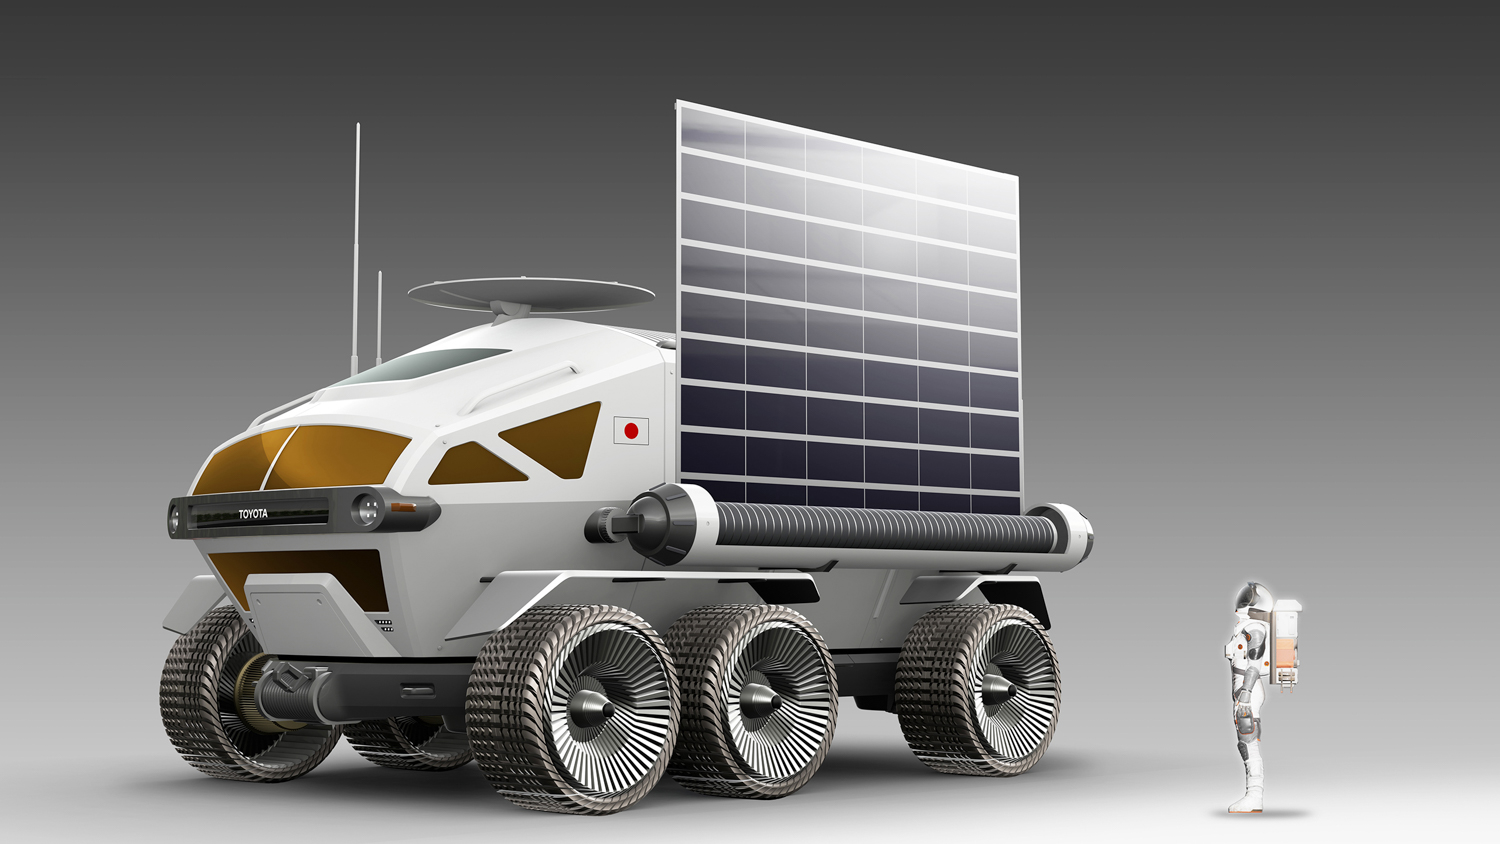 Toyota Pressurized Moon Rover concept rendering side